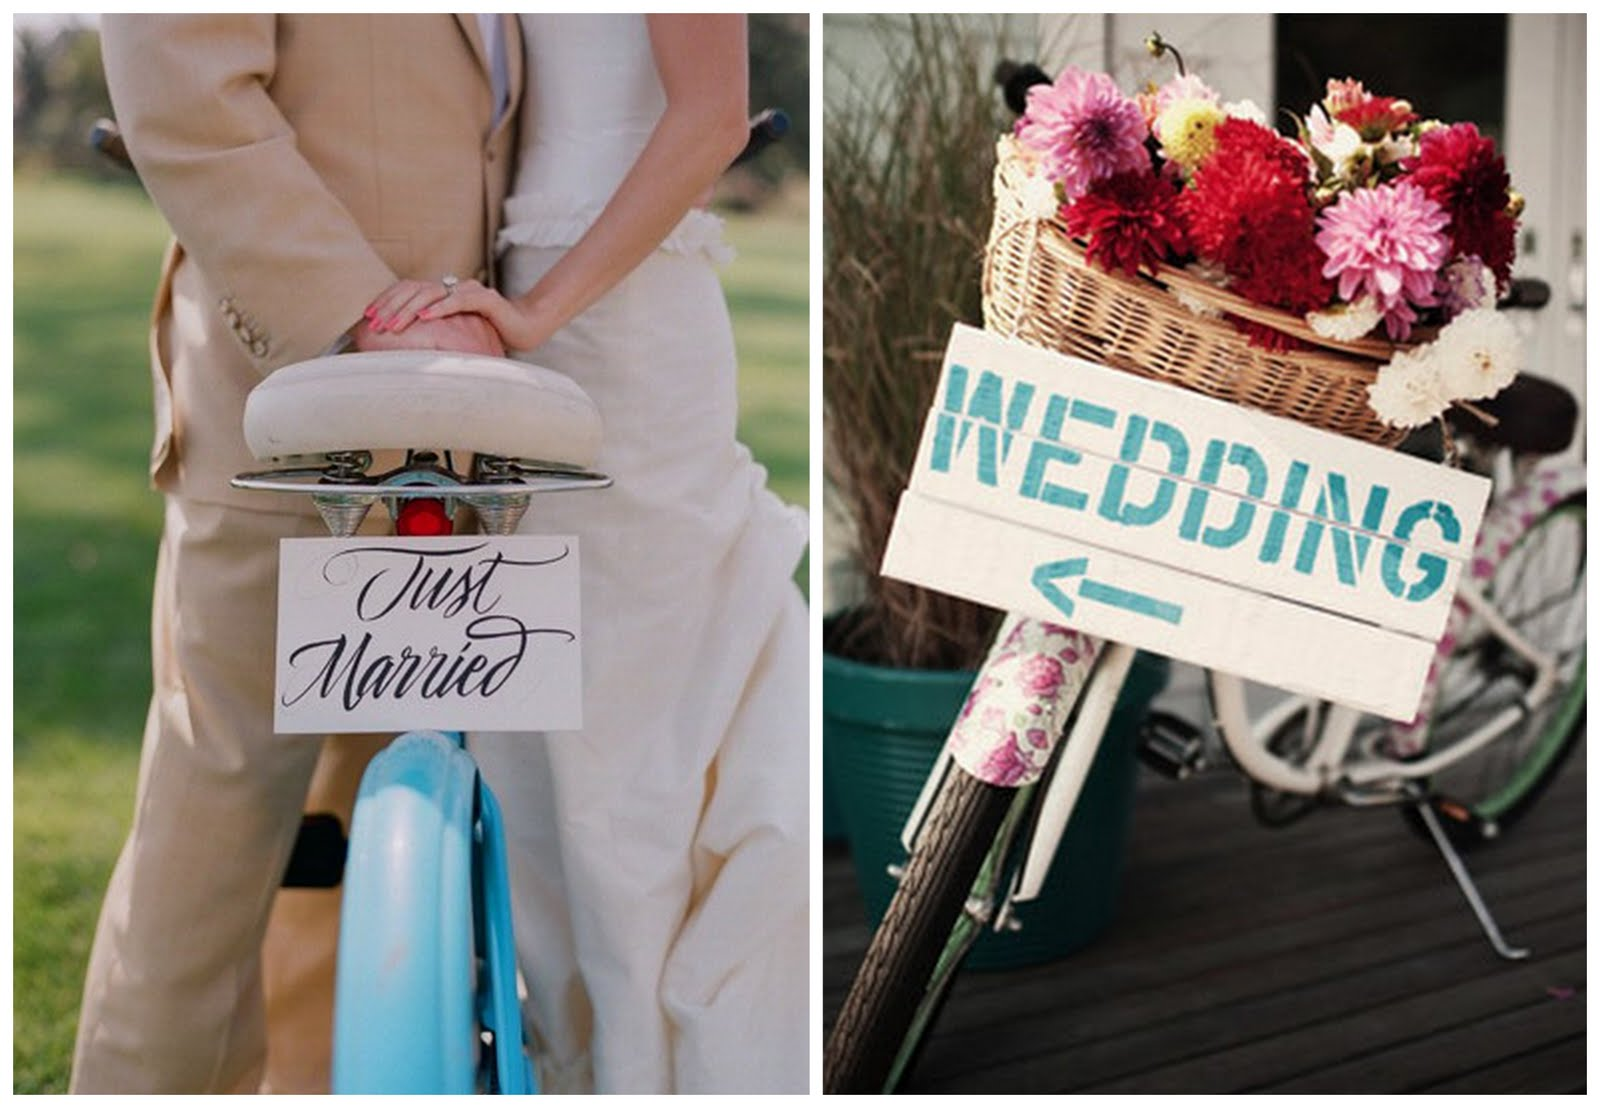 Bicycle-Wedding-Theme-Before-the-Big-Day-Wedding-Blog-UK.jpg